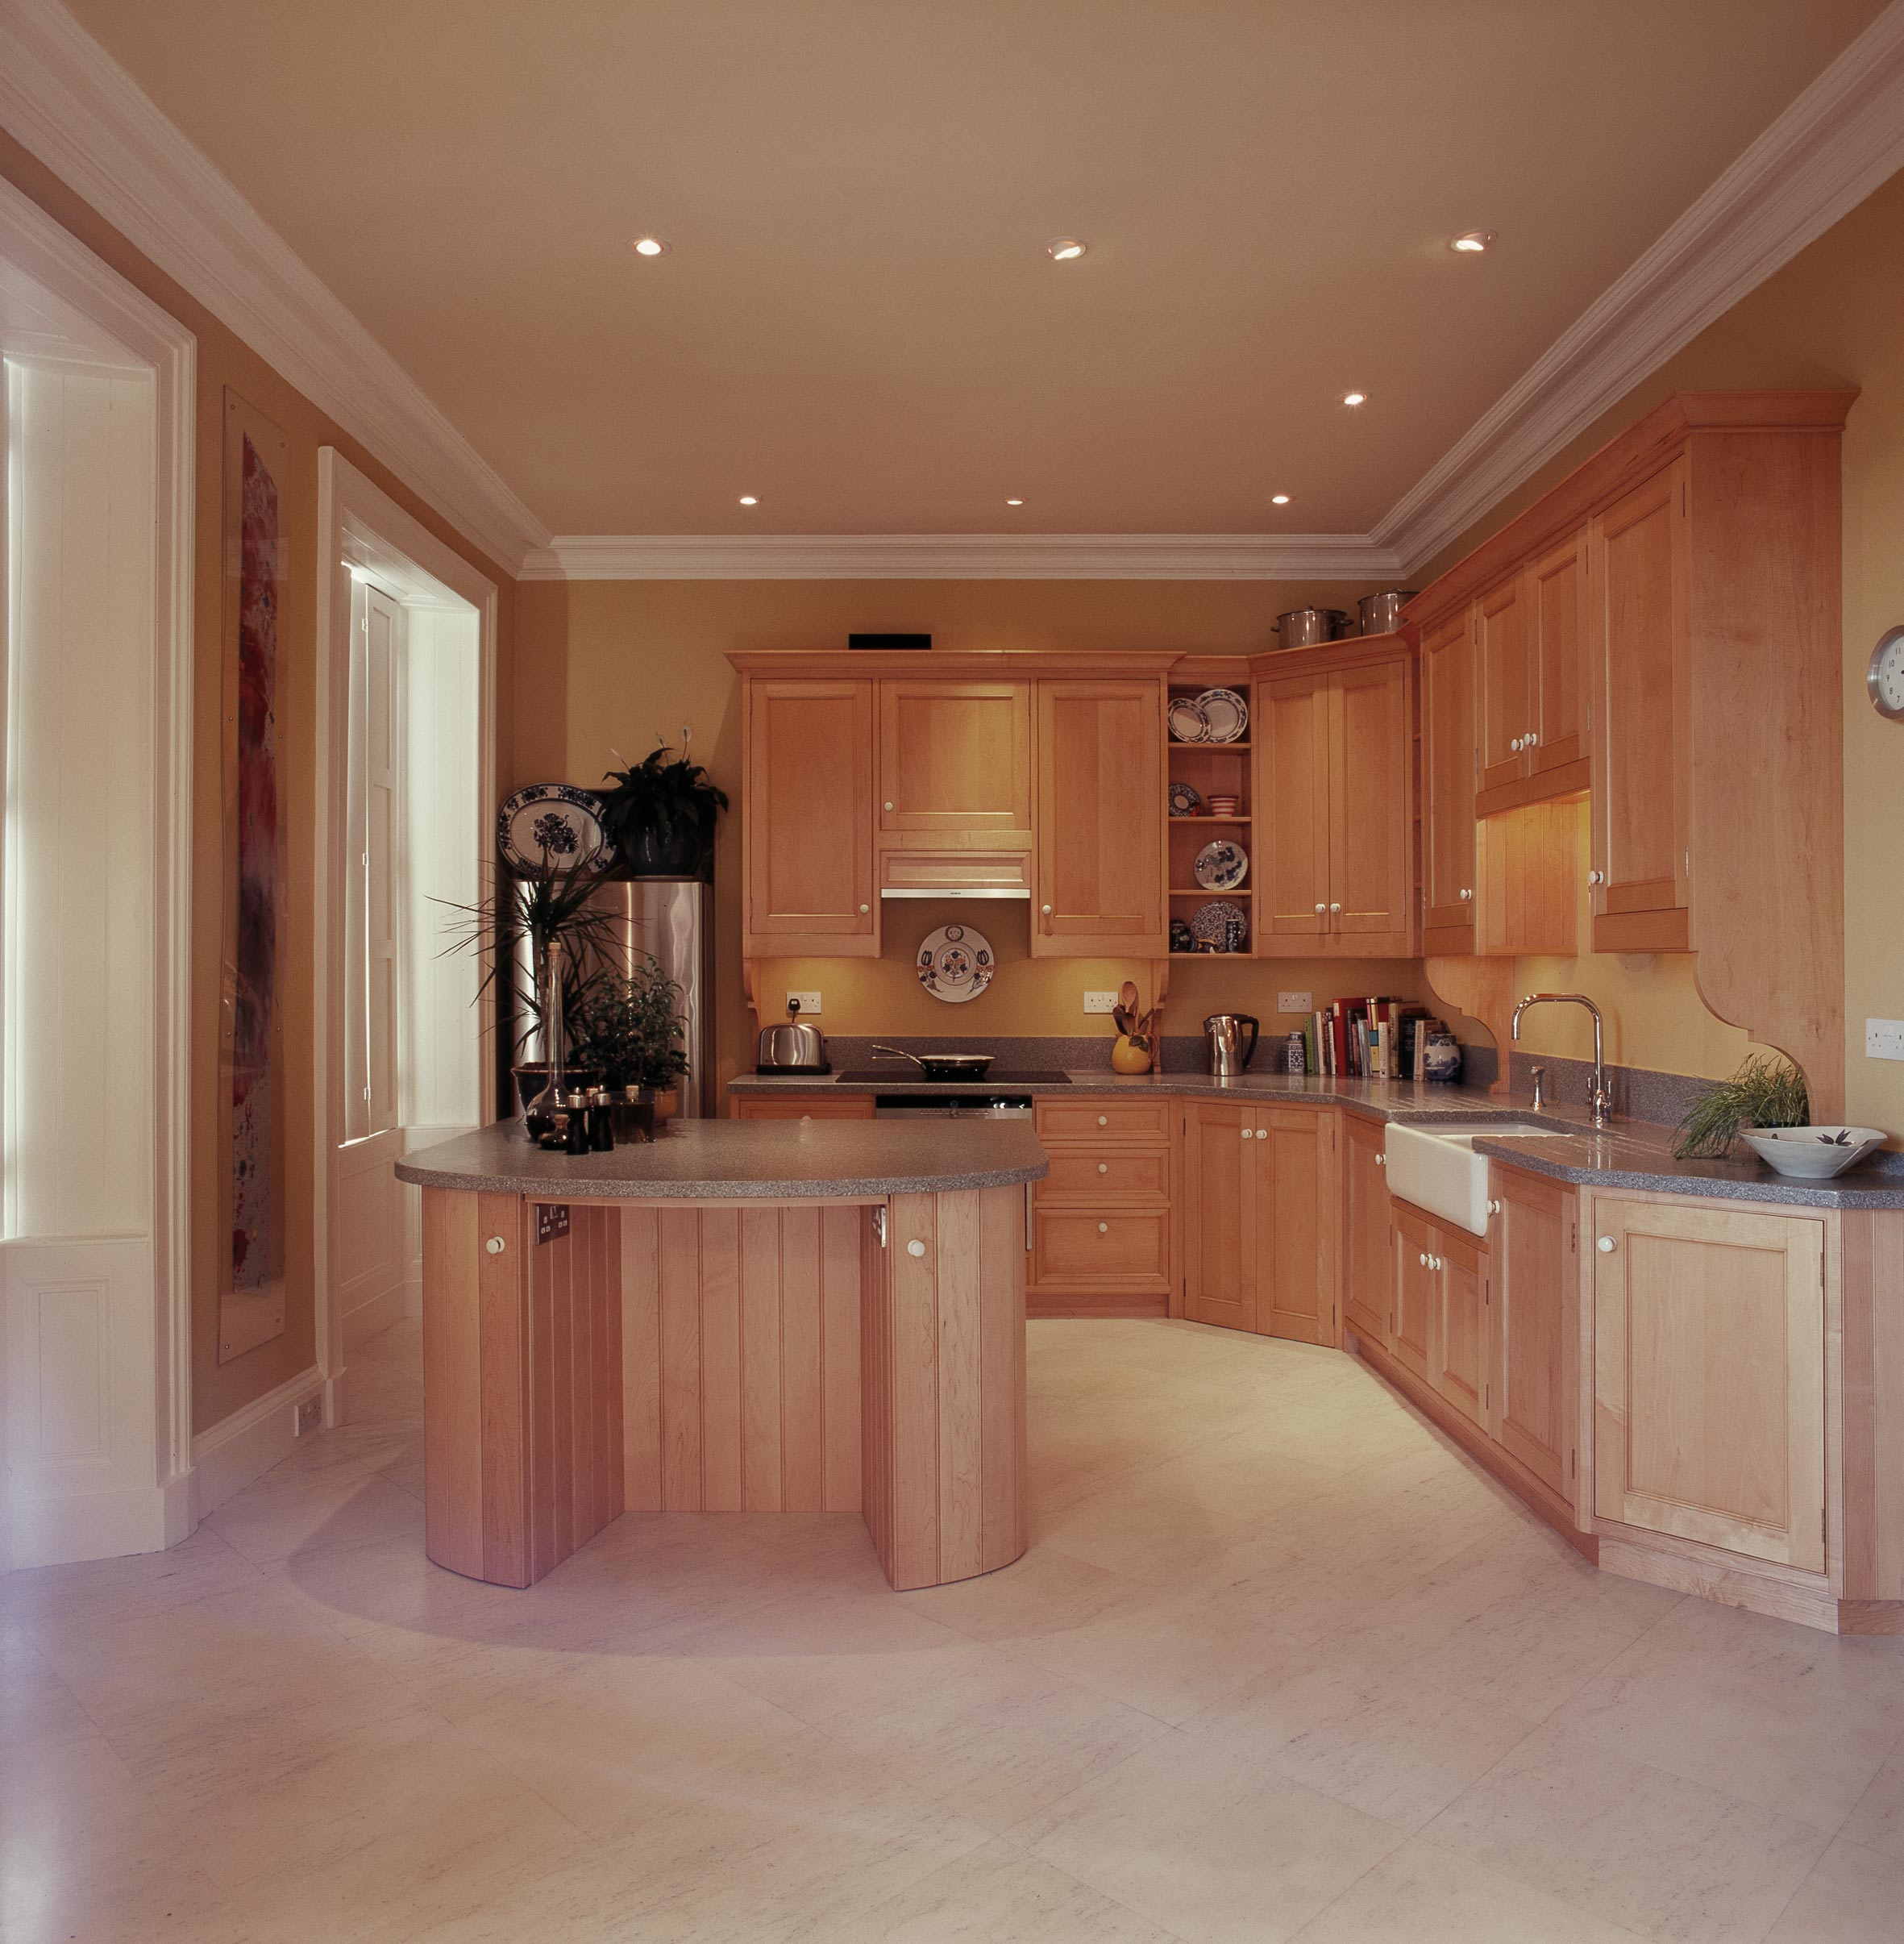 Bespoke kitchen in sycamore, the Grange, Edinburgh.